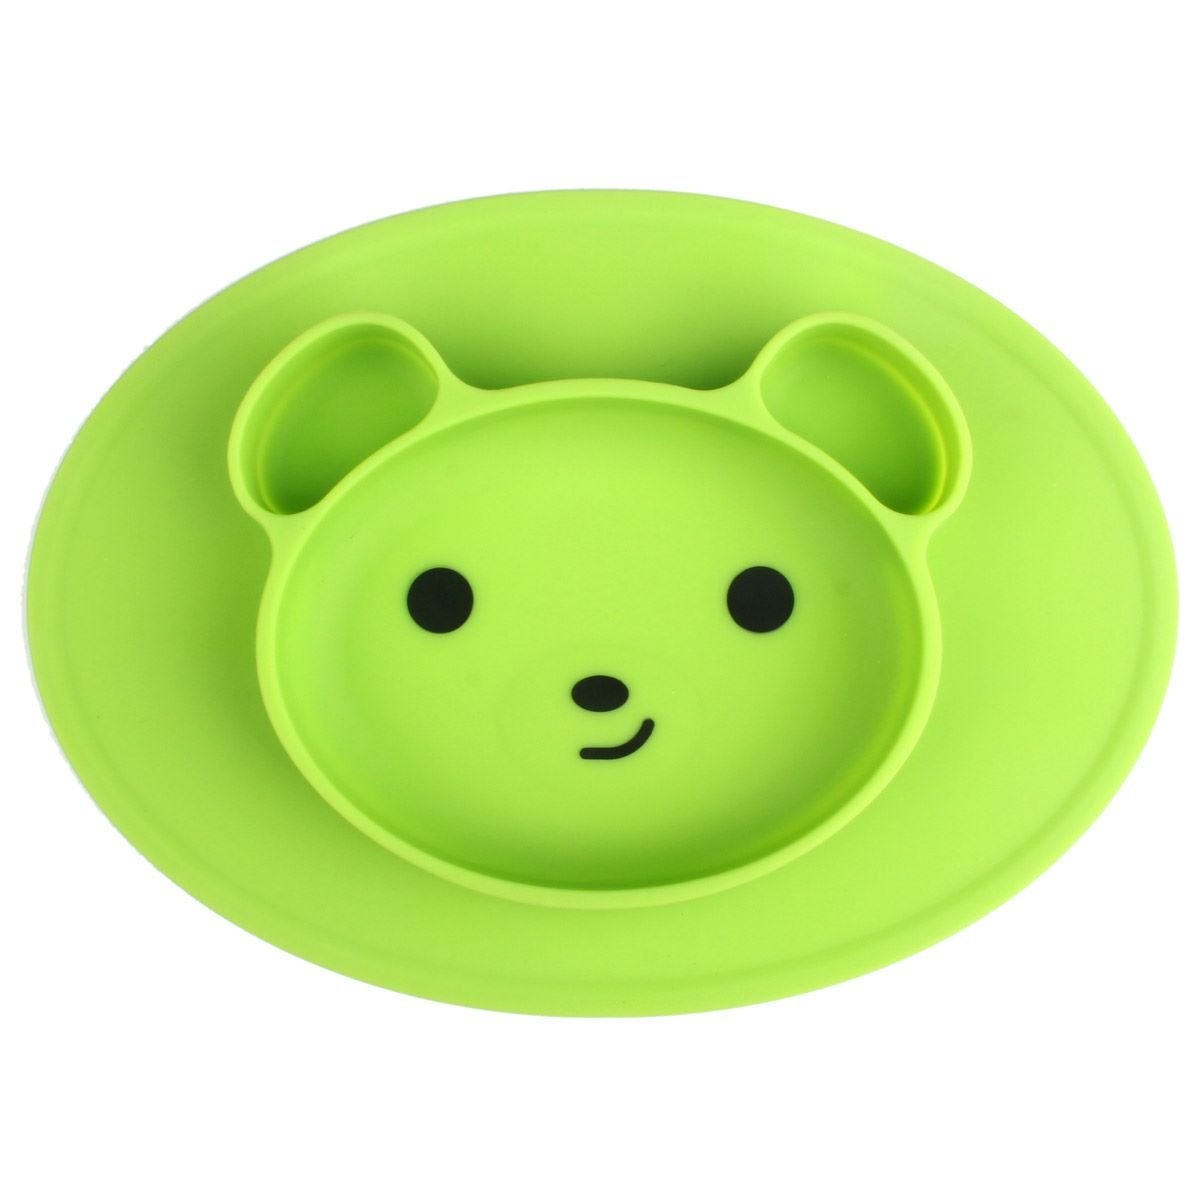 Baby Silicone Suction Placemat for Toddlers and Kids, Baby Portable Suction Plates BPA Free Bear Feeding Trays Dishwasher and Microwave Safe Fits Most High Chair Trays, Green